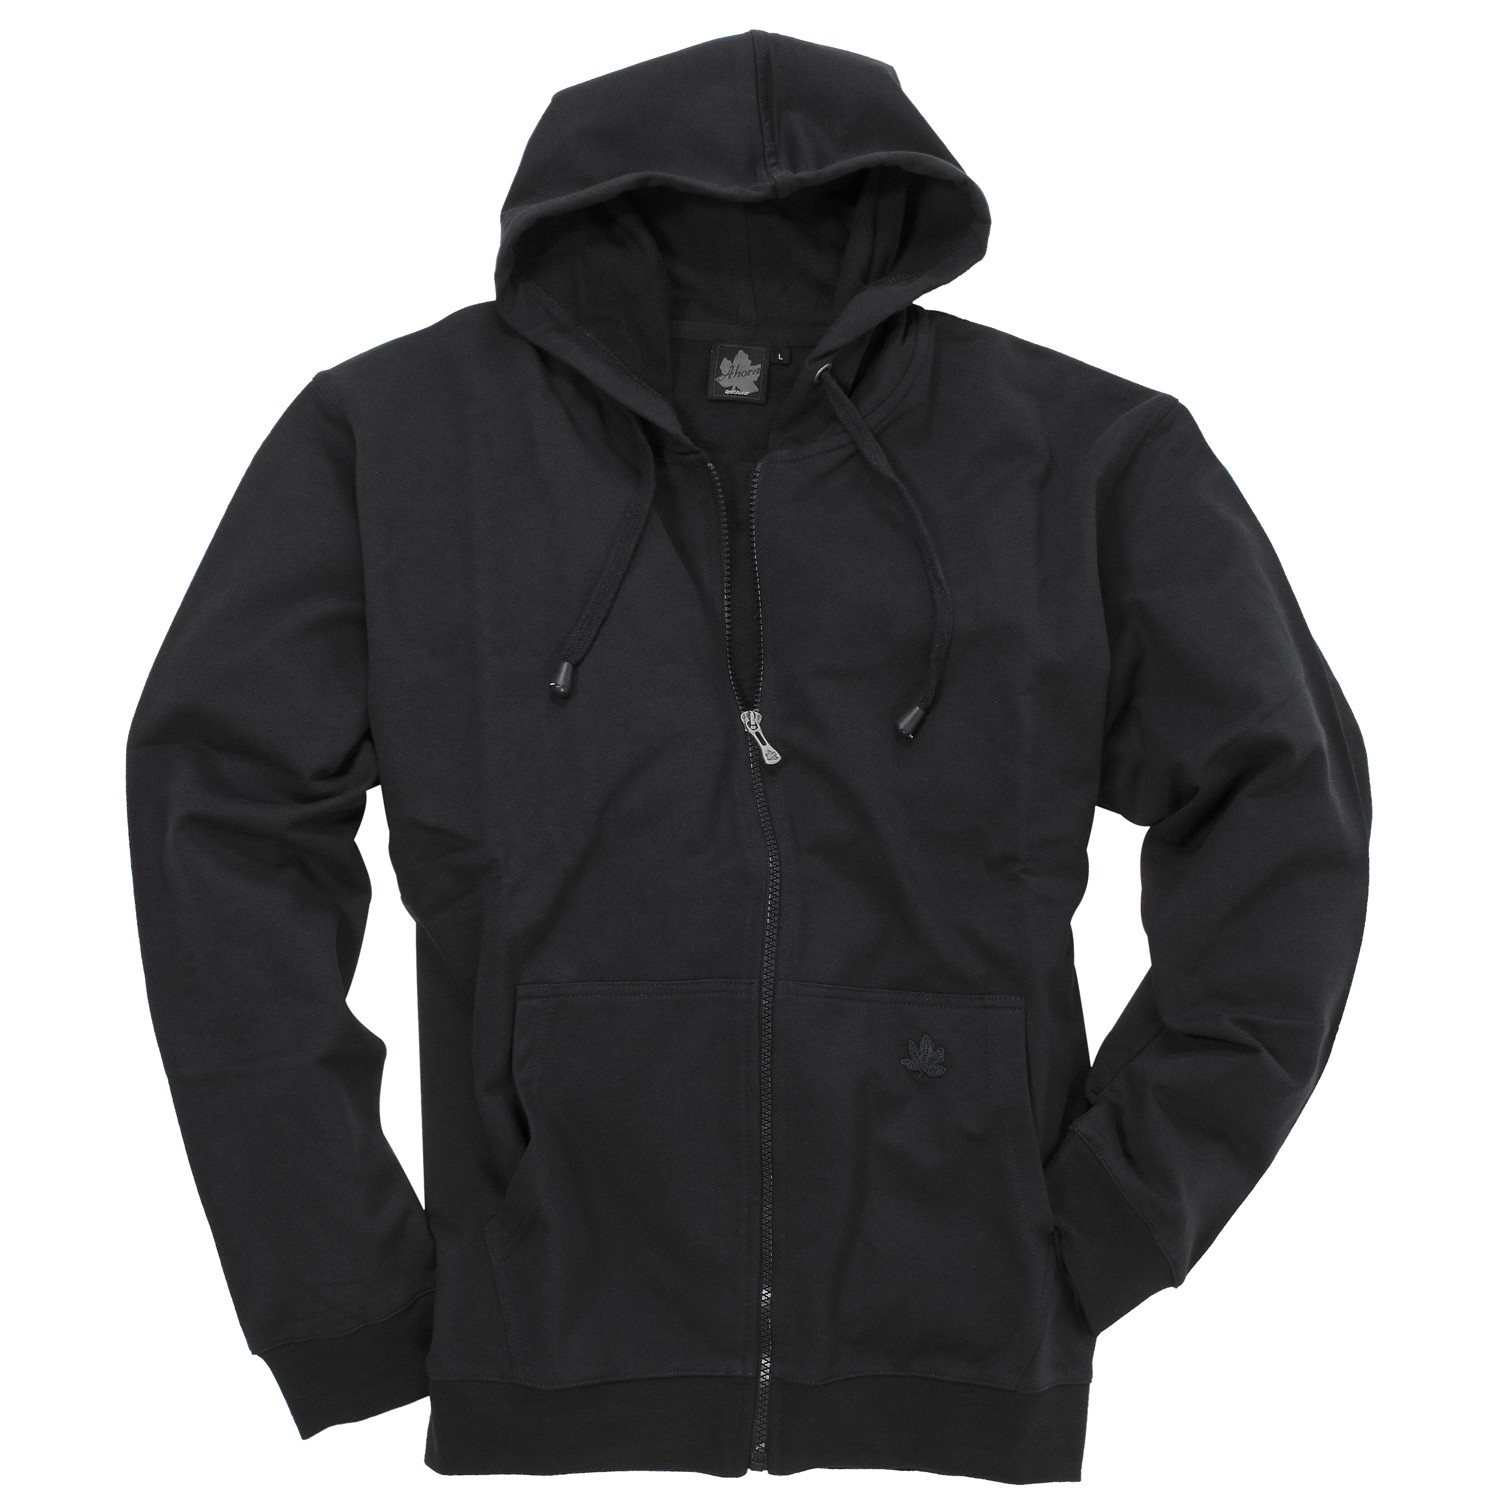 Detail Image to Black hoody jacket from Ahorn Sportswear in extra large sizes until 10 XL